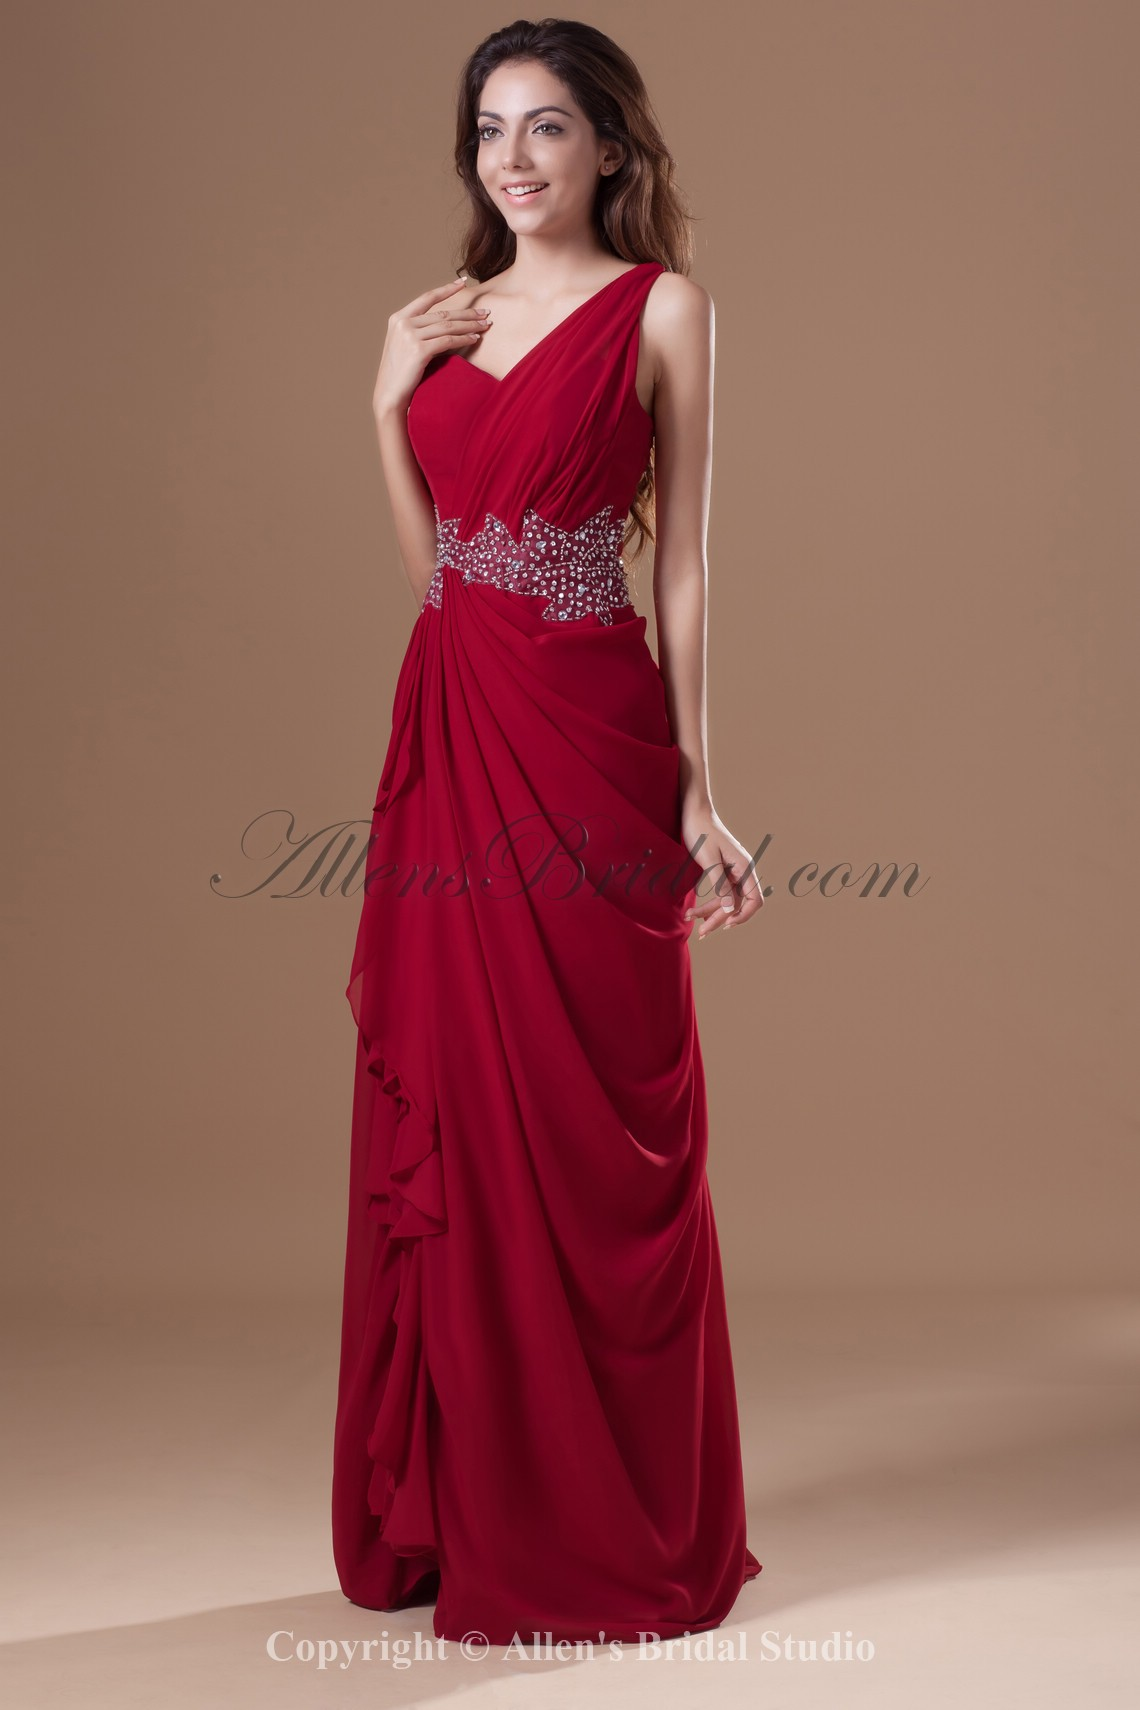 /577-4624/chiffon-one-shoulder-neckline-floor-length-column-crystals-prom-dress.jpg